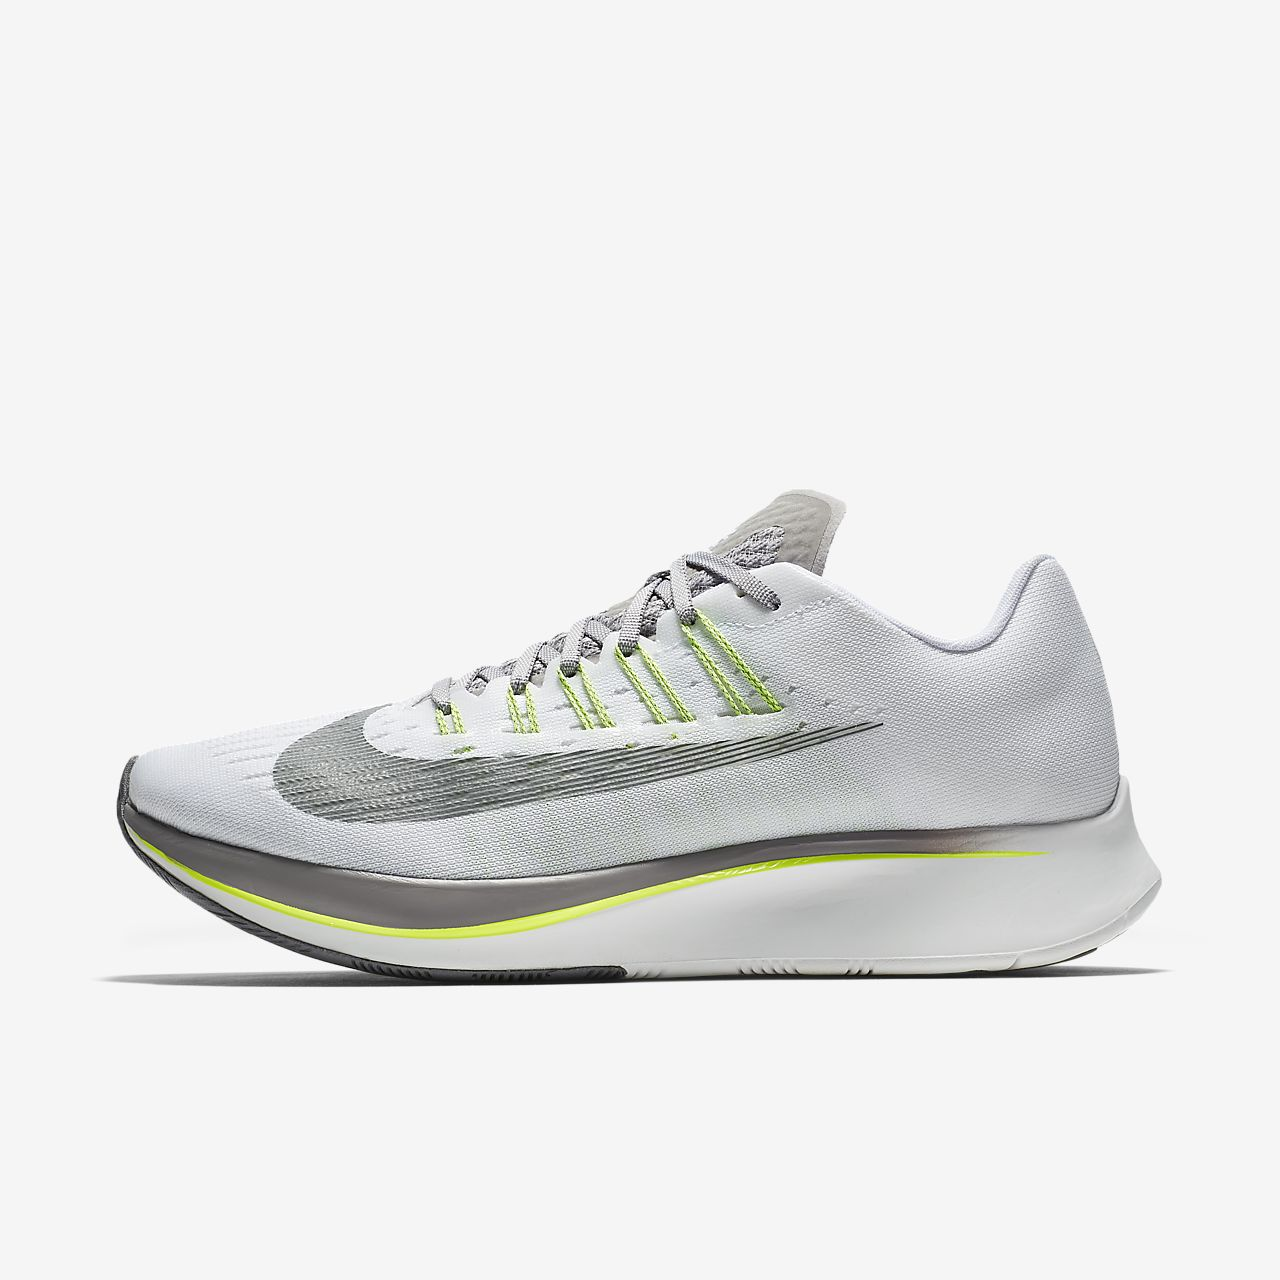 9472cbca5d22 Nike Zoom Fly Men s Running Shoe. Nike.com